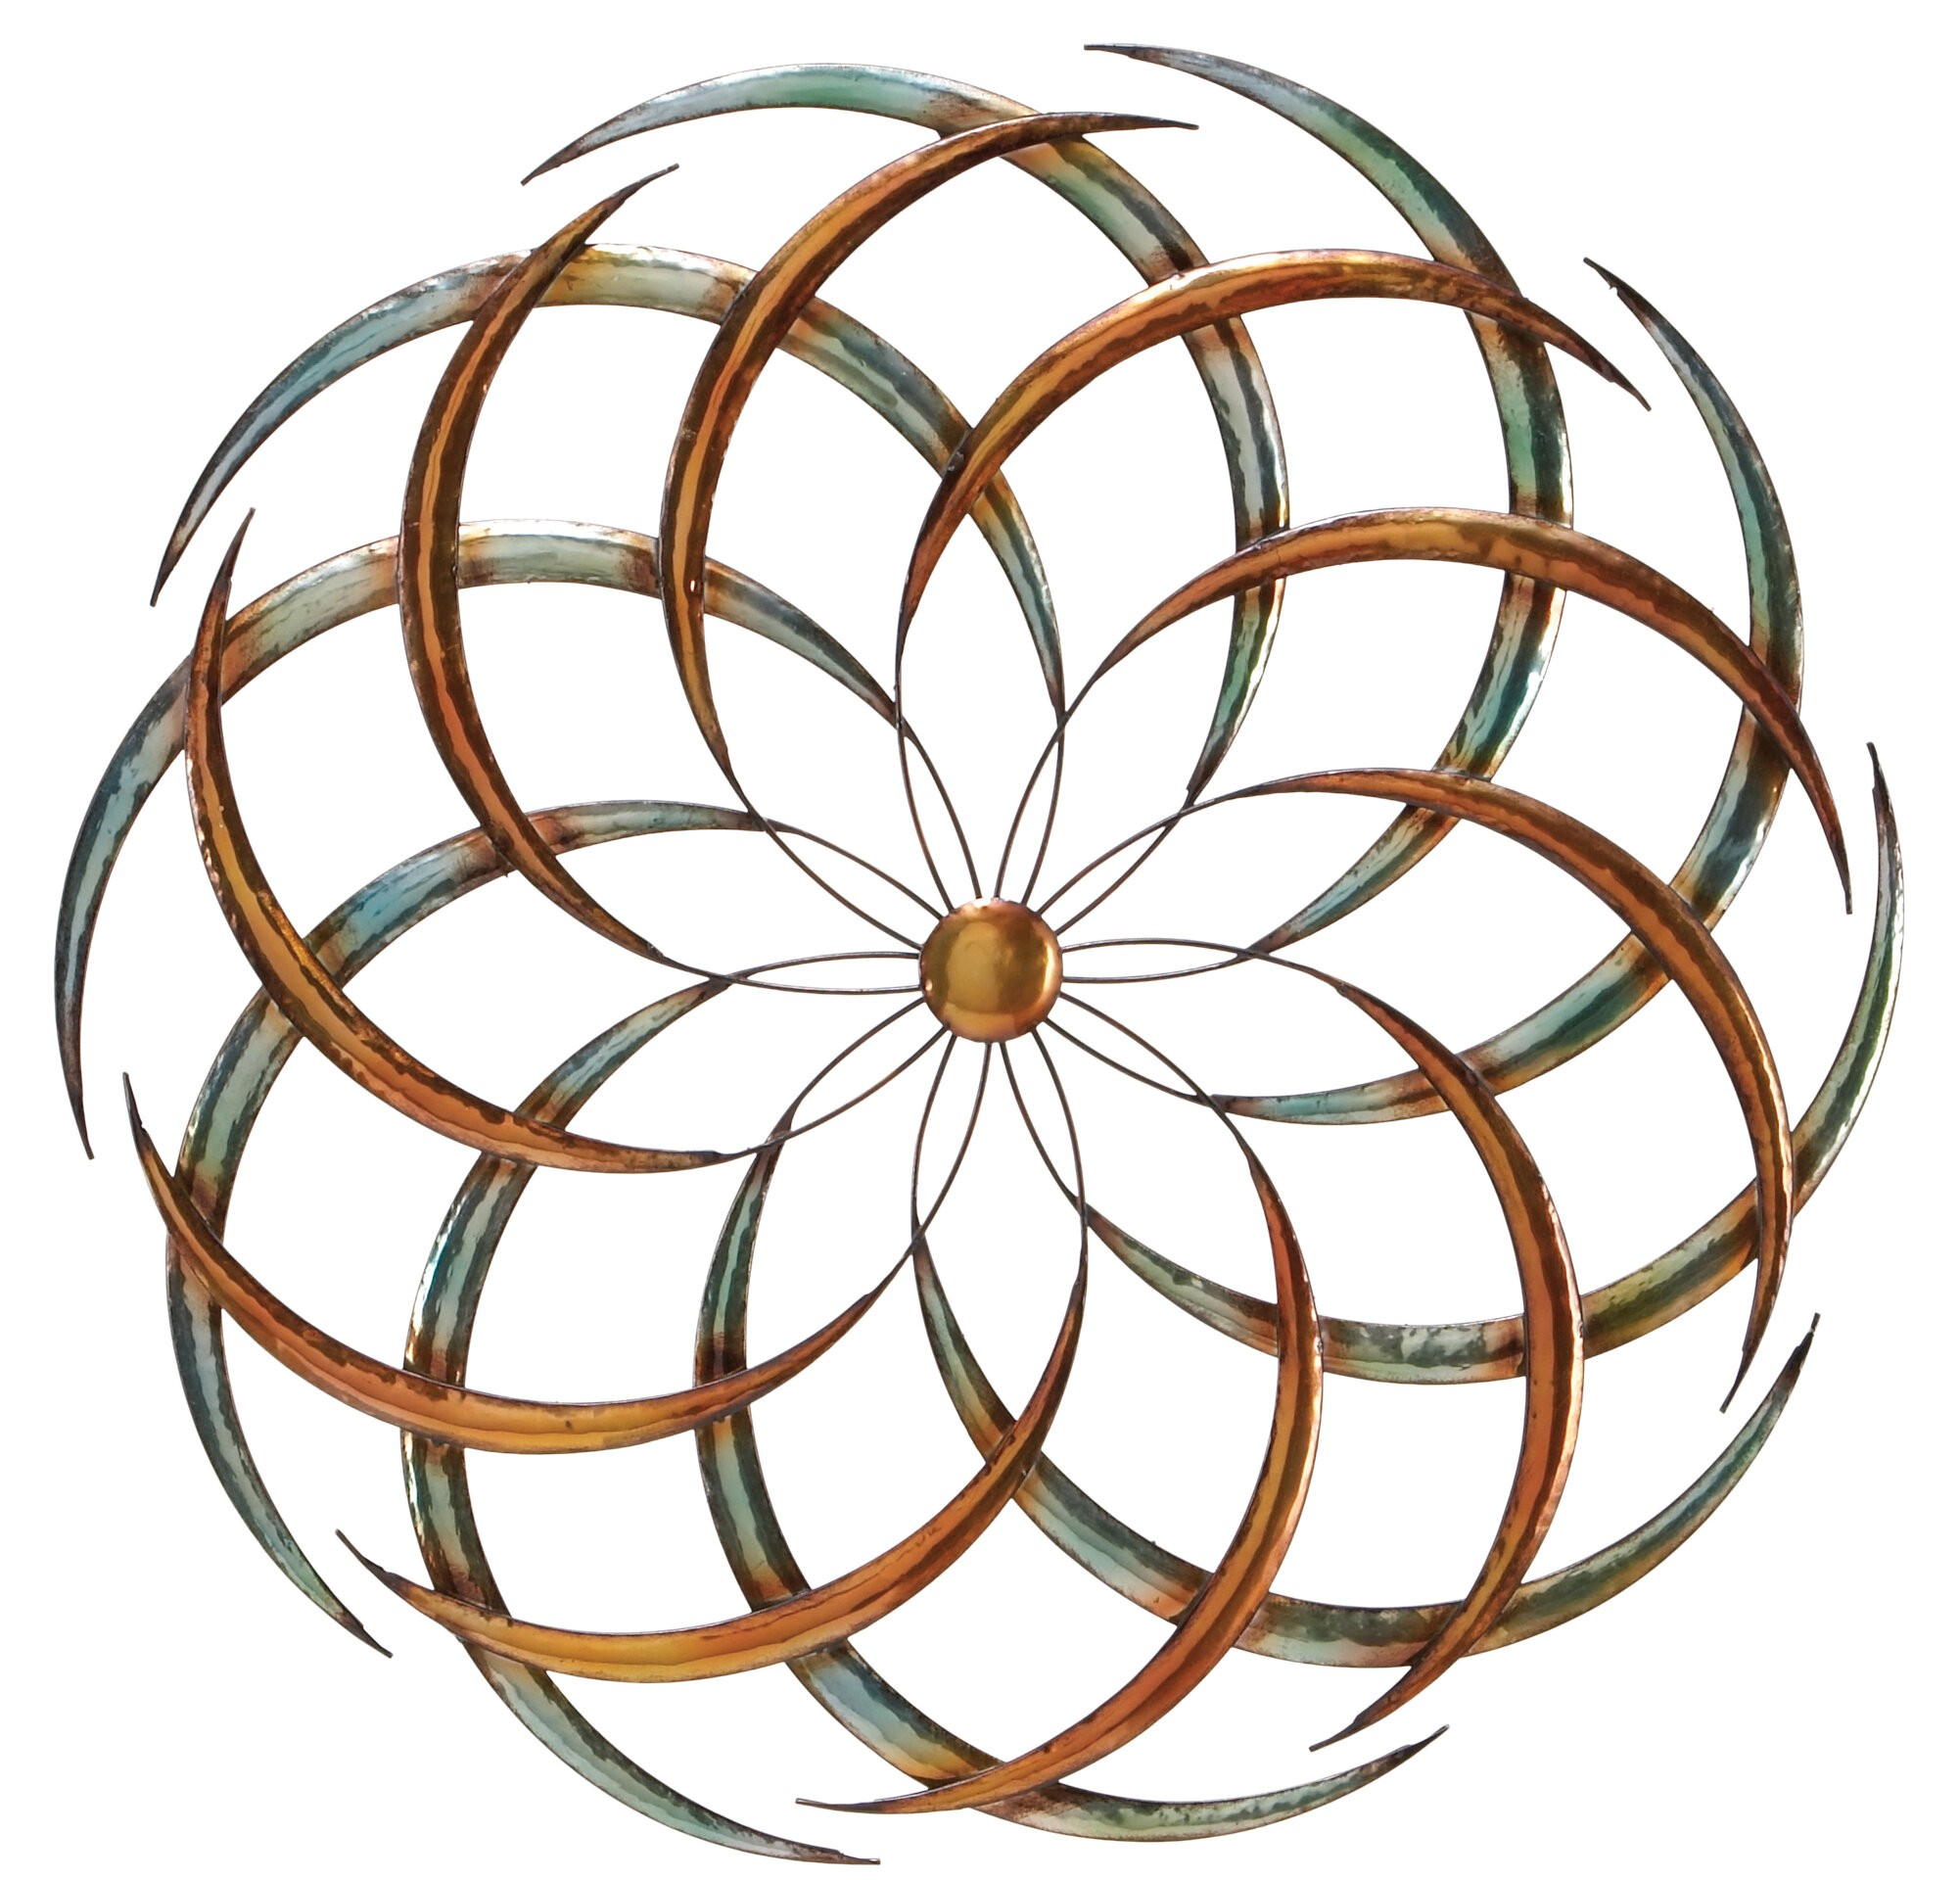 Large Contemporary Abstract Art Wall Hanging Round Iron Decor Metal Plaque